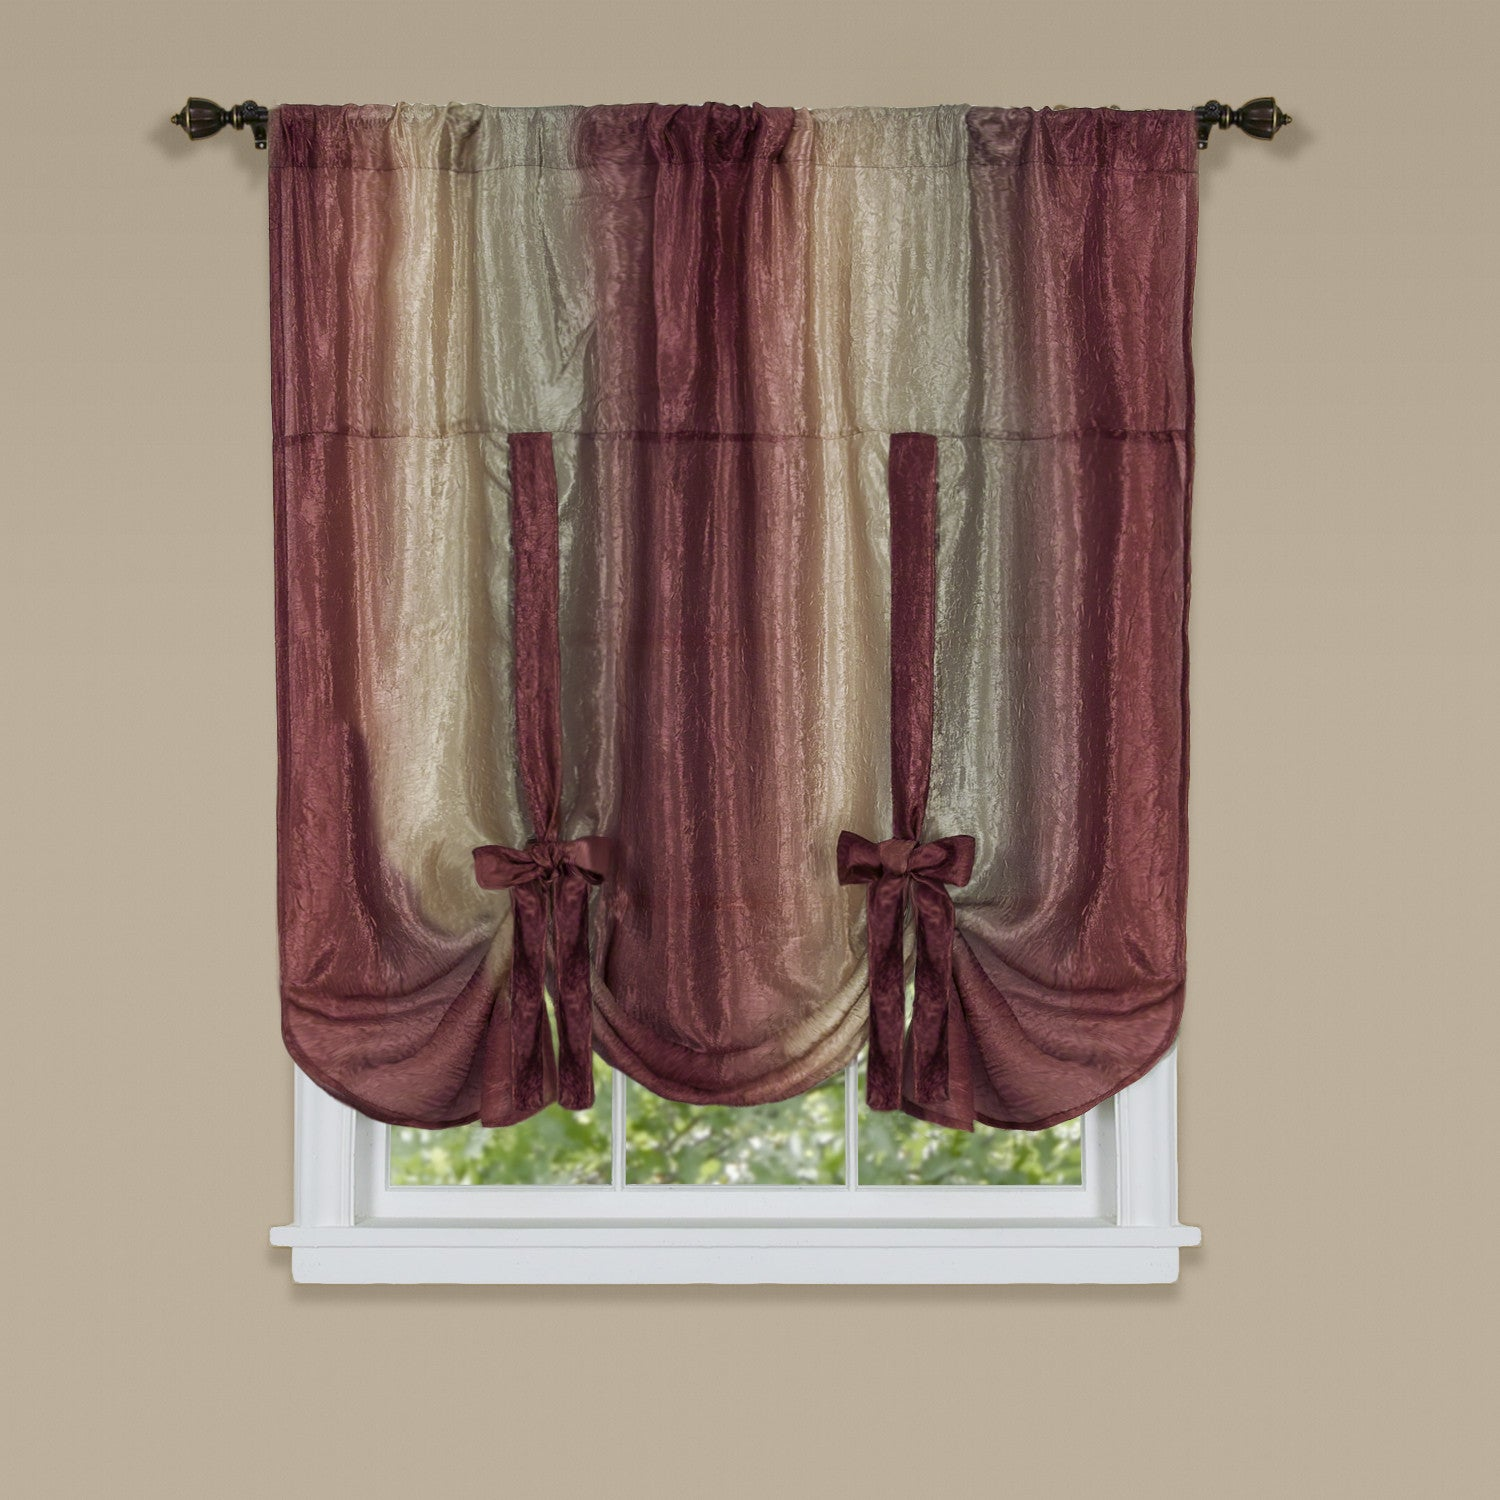 Ombre Rod Pocket Tie Up Balloon Shade Marburn Curtains